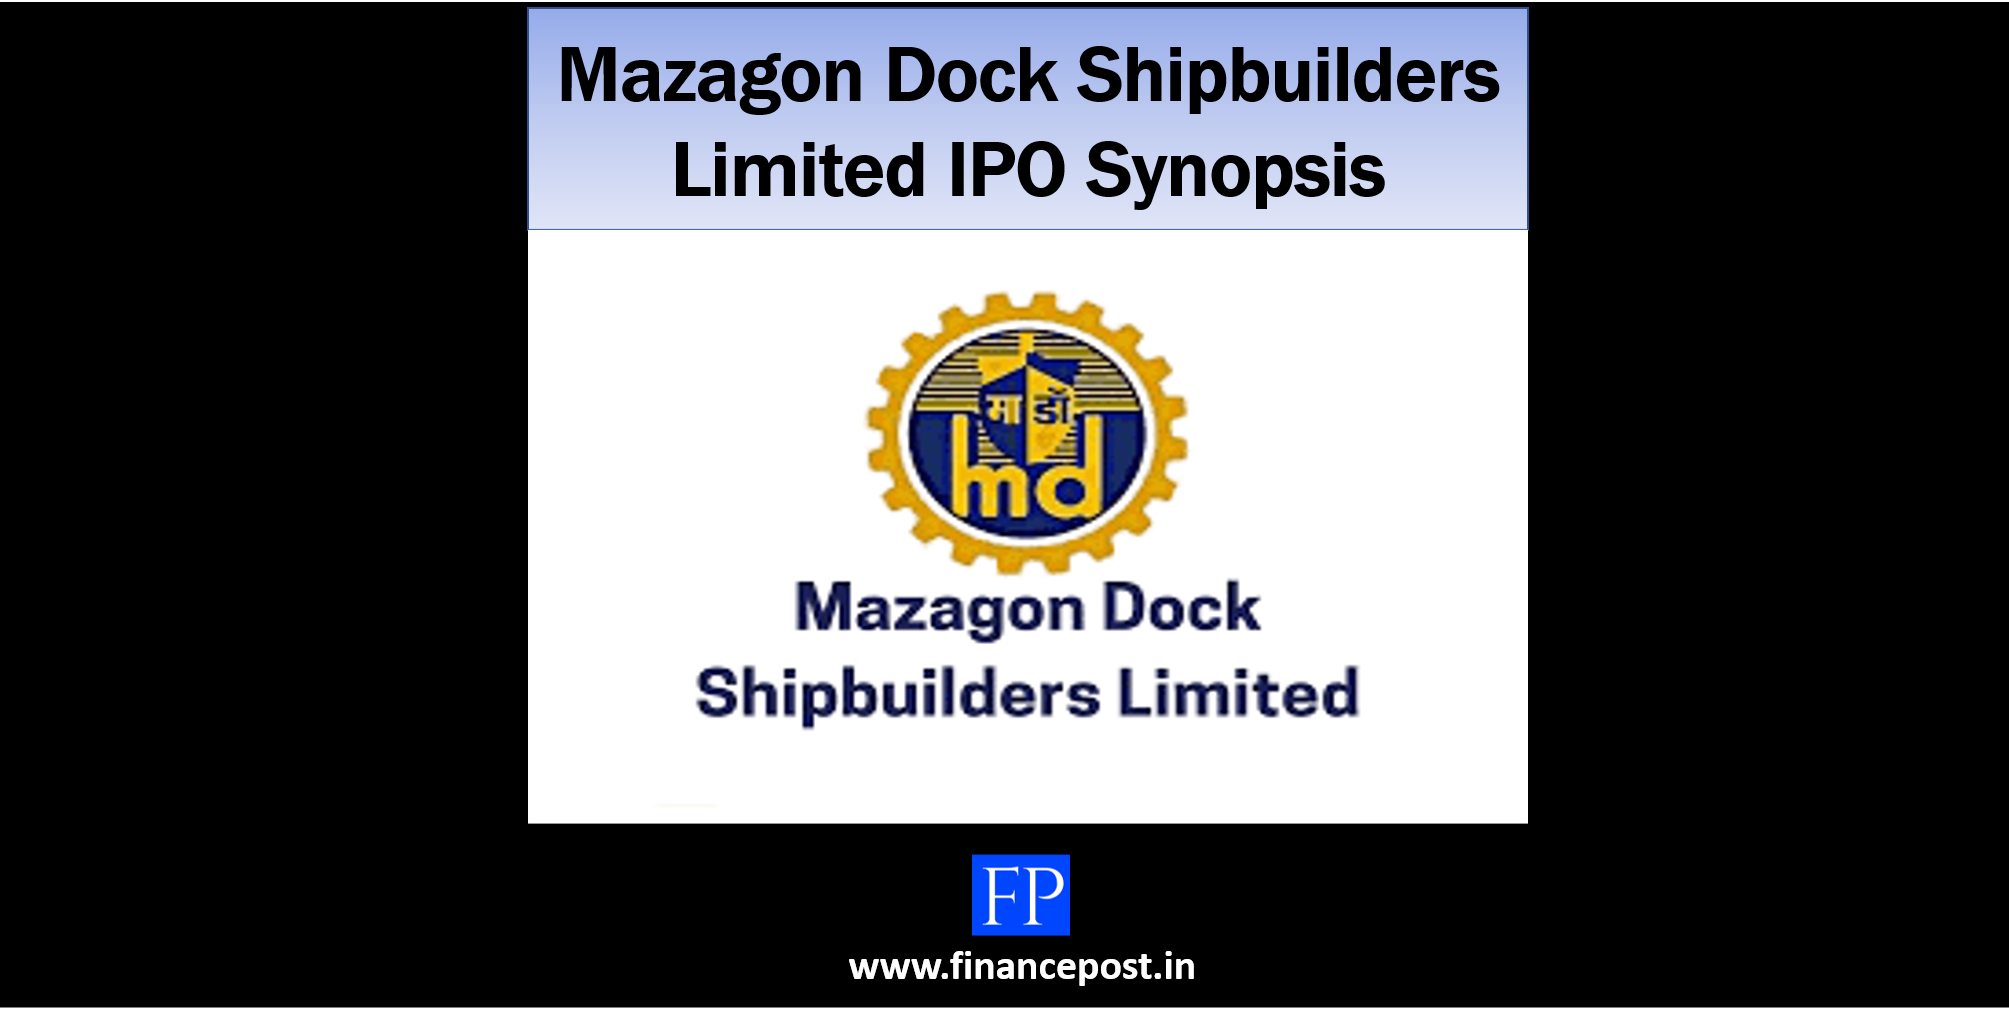 Mazagon Dock Shipbuilders Limited IPO Synopsis